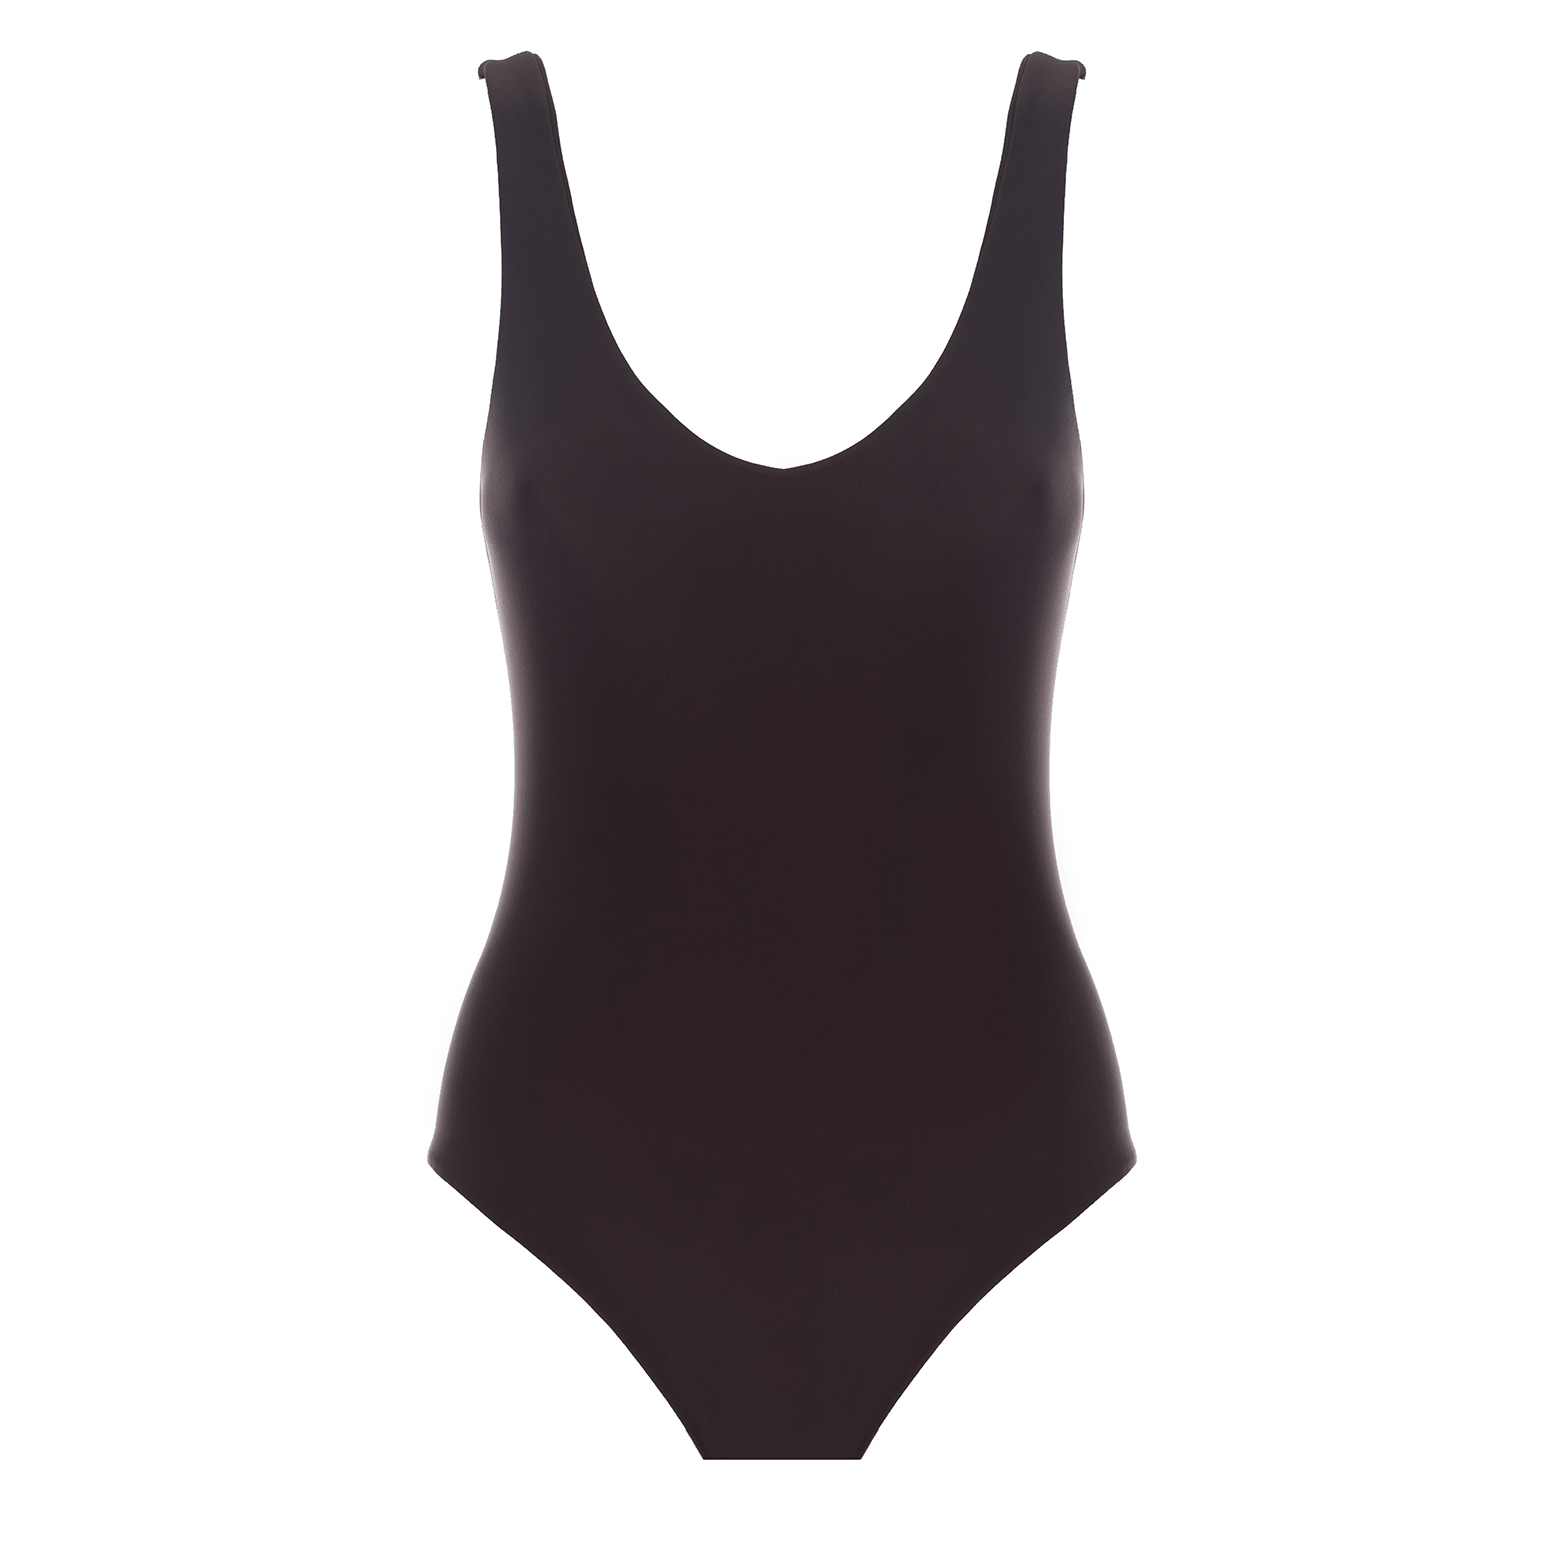 Linda Raff Collection -ONE-PIECE BASIC CHOCOLATE